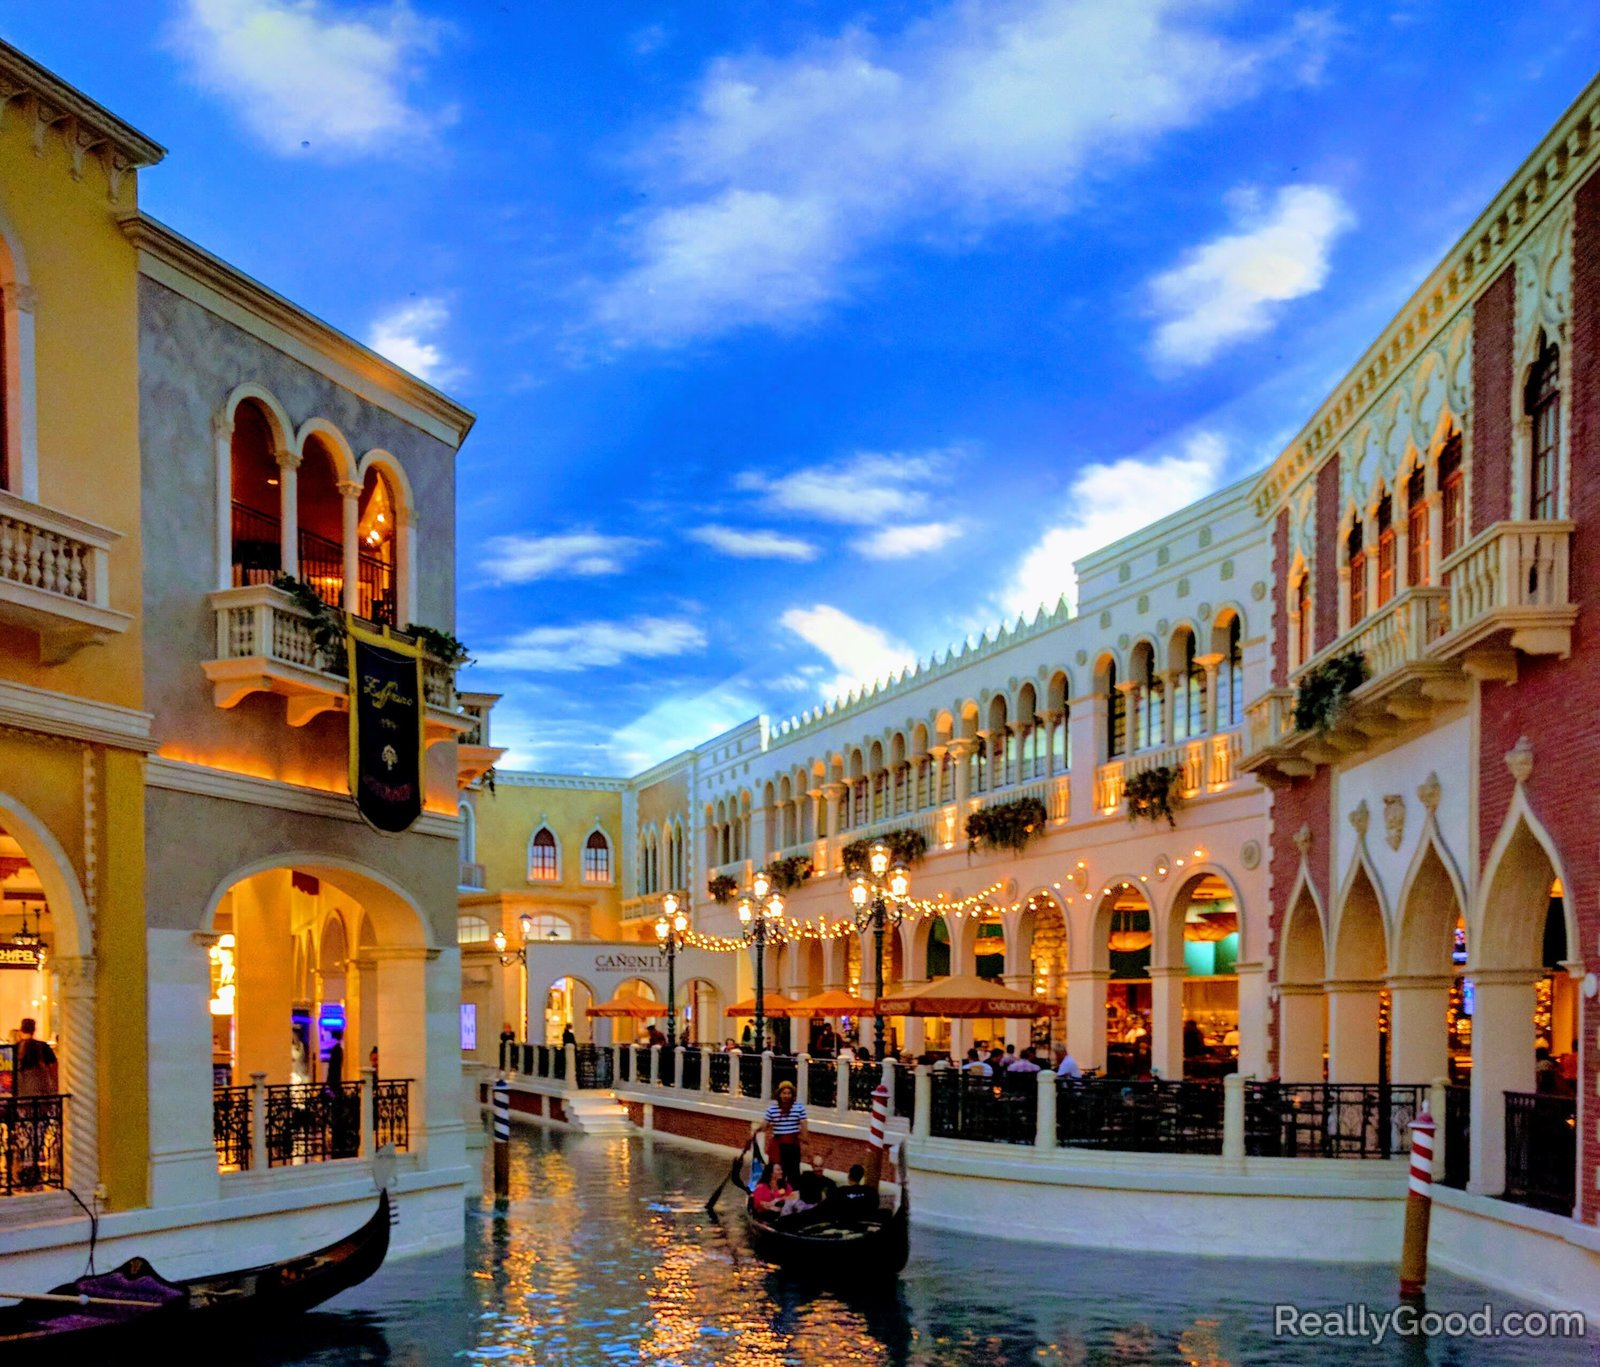 The Grand Canal Shoppes in Las Vegas